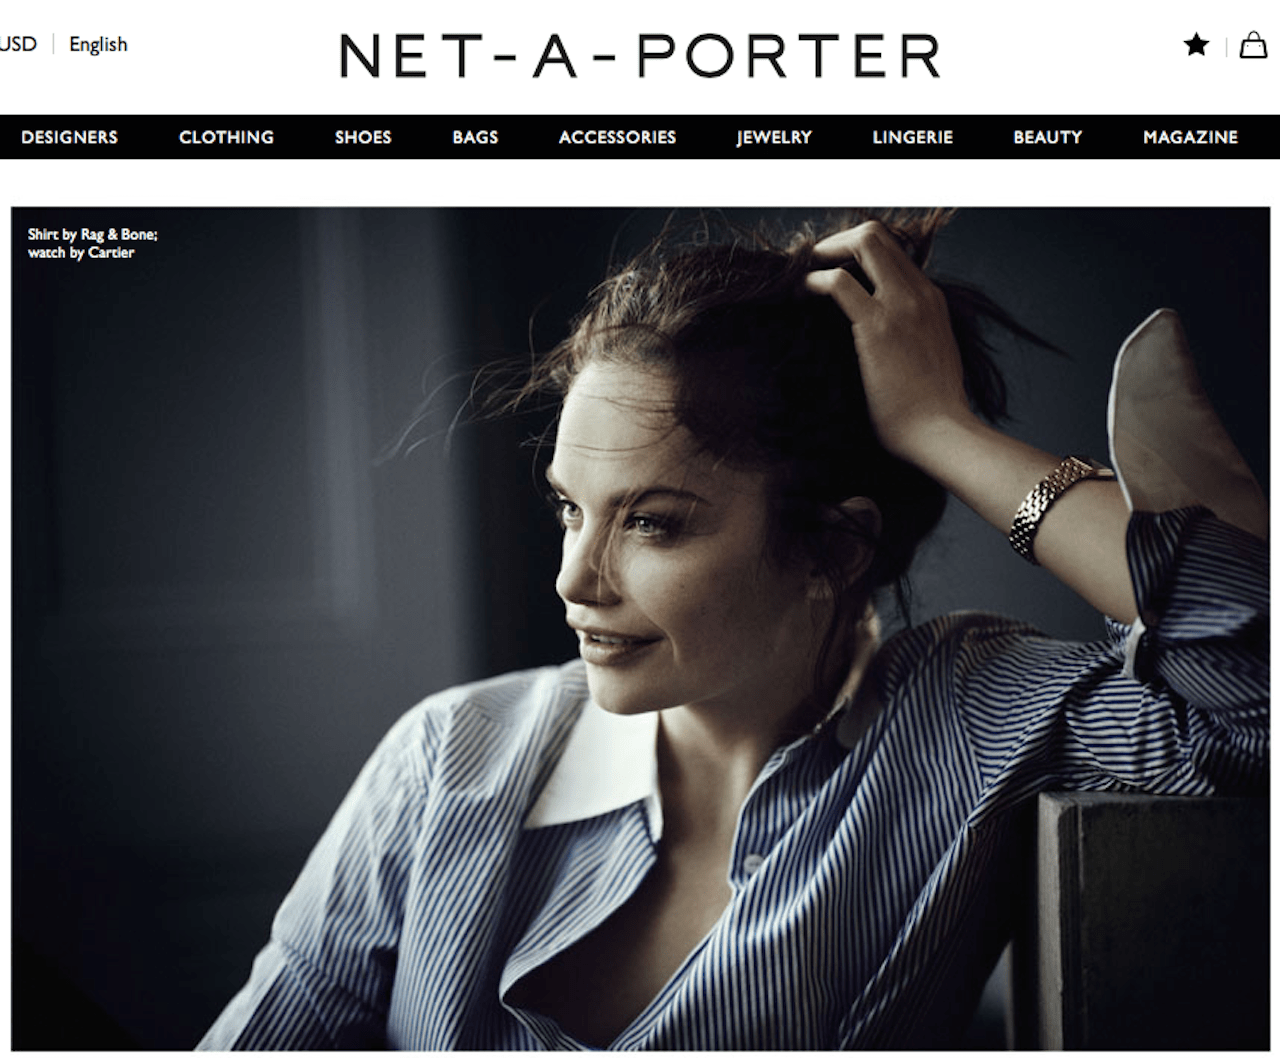 Le Meilleur Yoox Net A Porter Reports Fastest Q1 Growth In Asia Ce Mois Ci